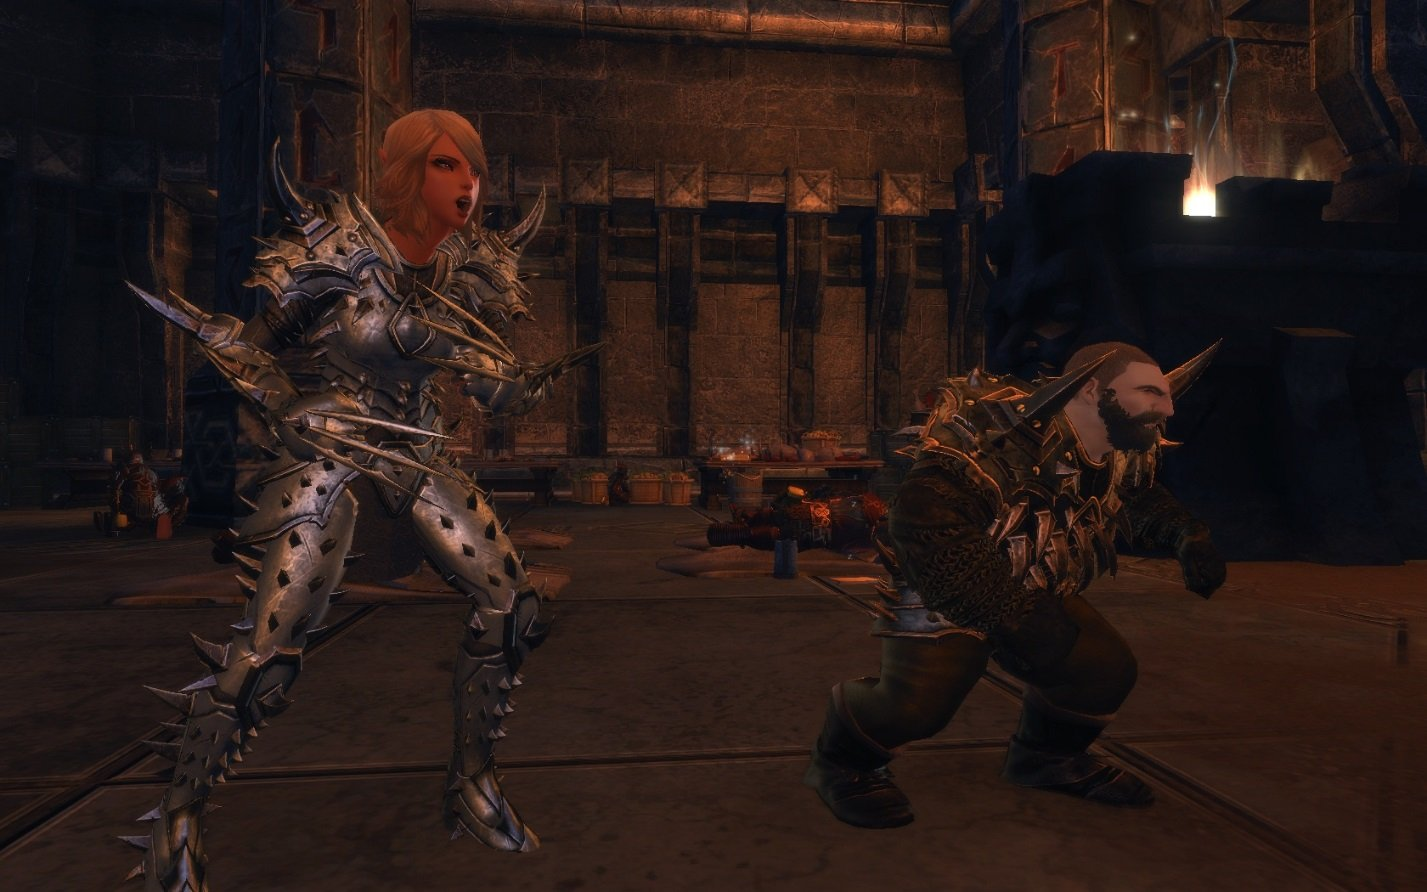 Neverwinter: The Maze Engine